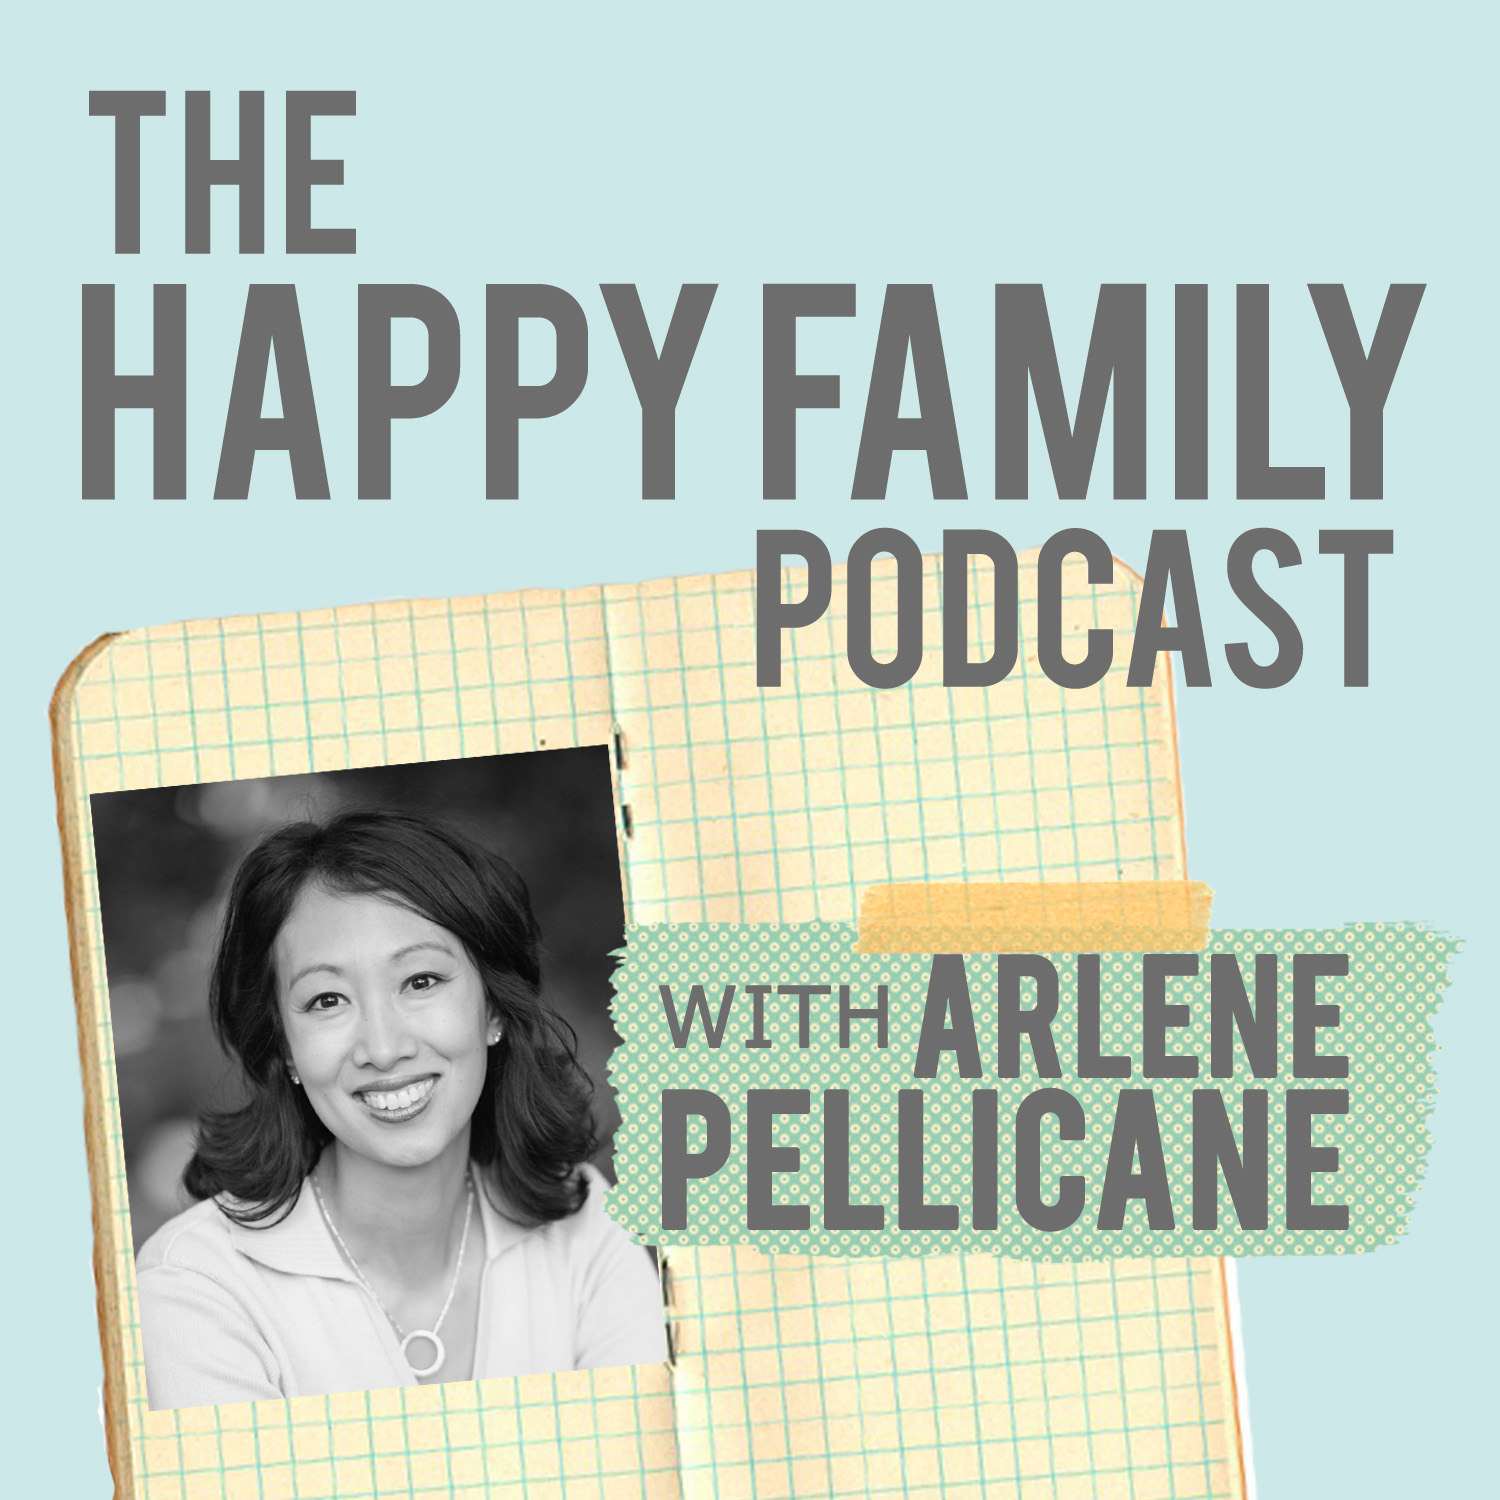 The Happy Family Podcast with Arlene Pellicane